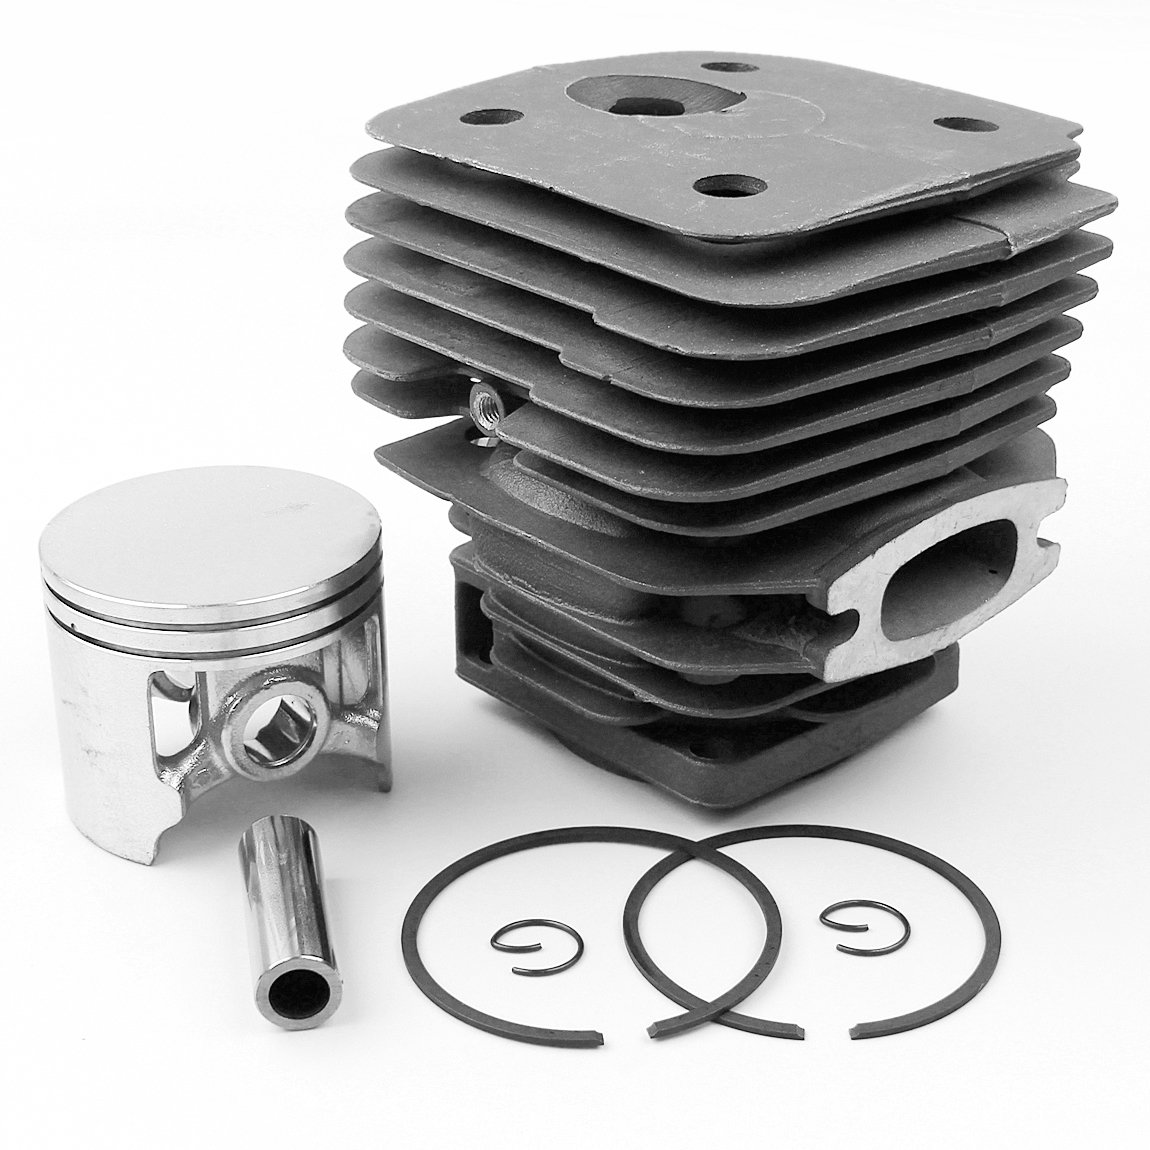 Haishine 56mm Cylinder Head Piston Kit Fit Husqvarna 395 XP 395XP 503993971 Chainsaw Engine Motor Parts 13mm Pin by Haishine